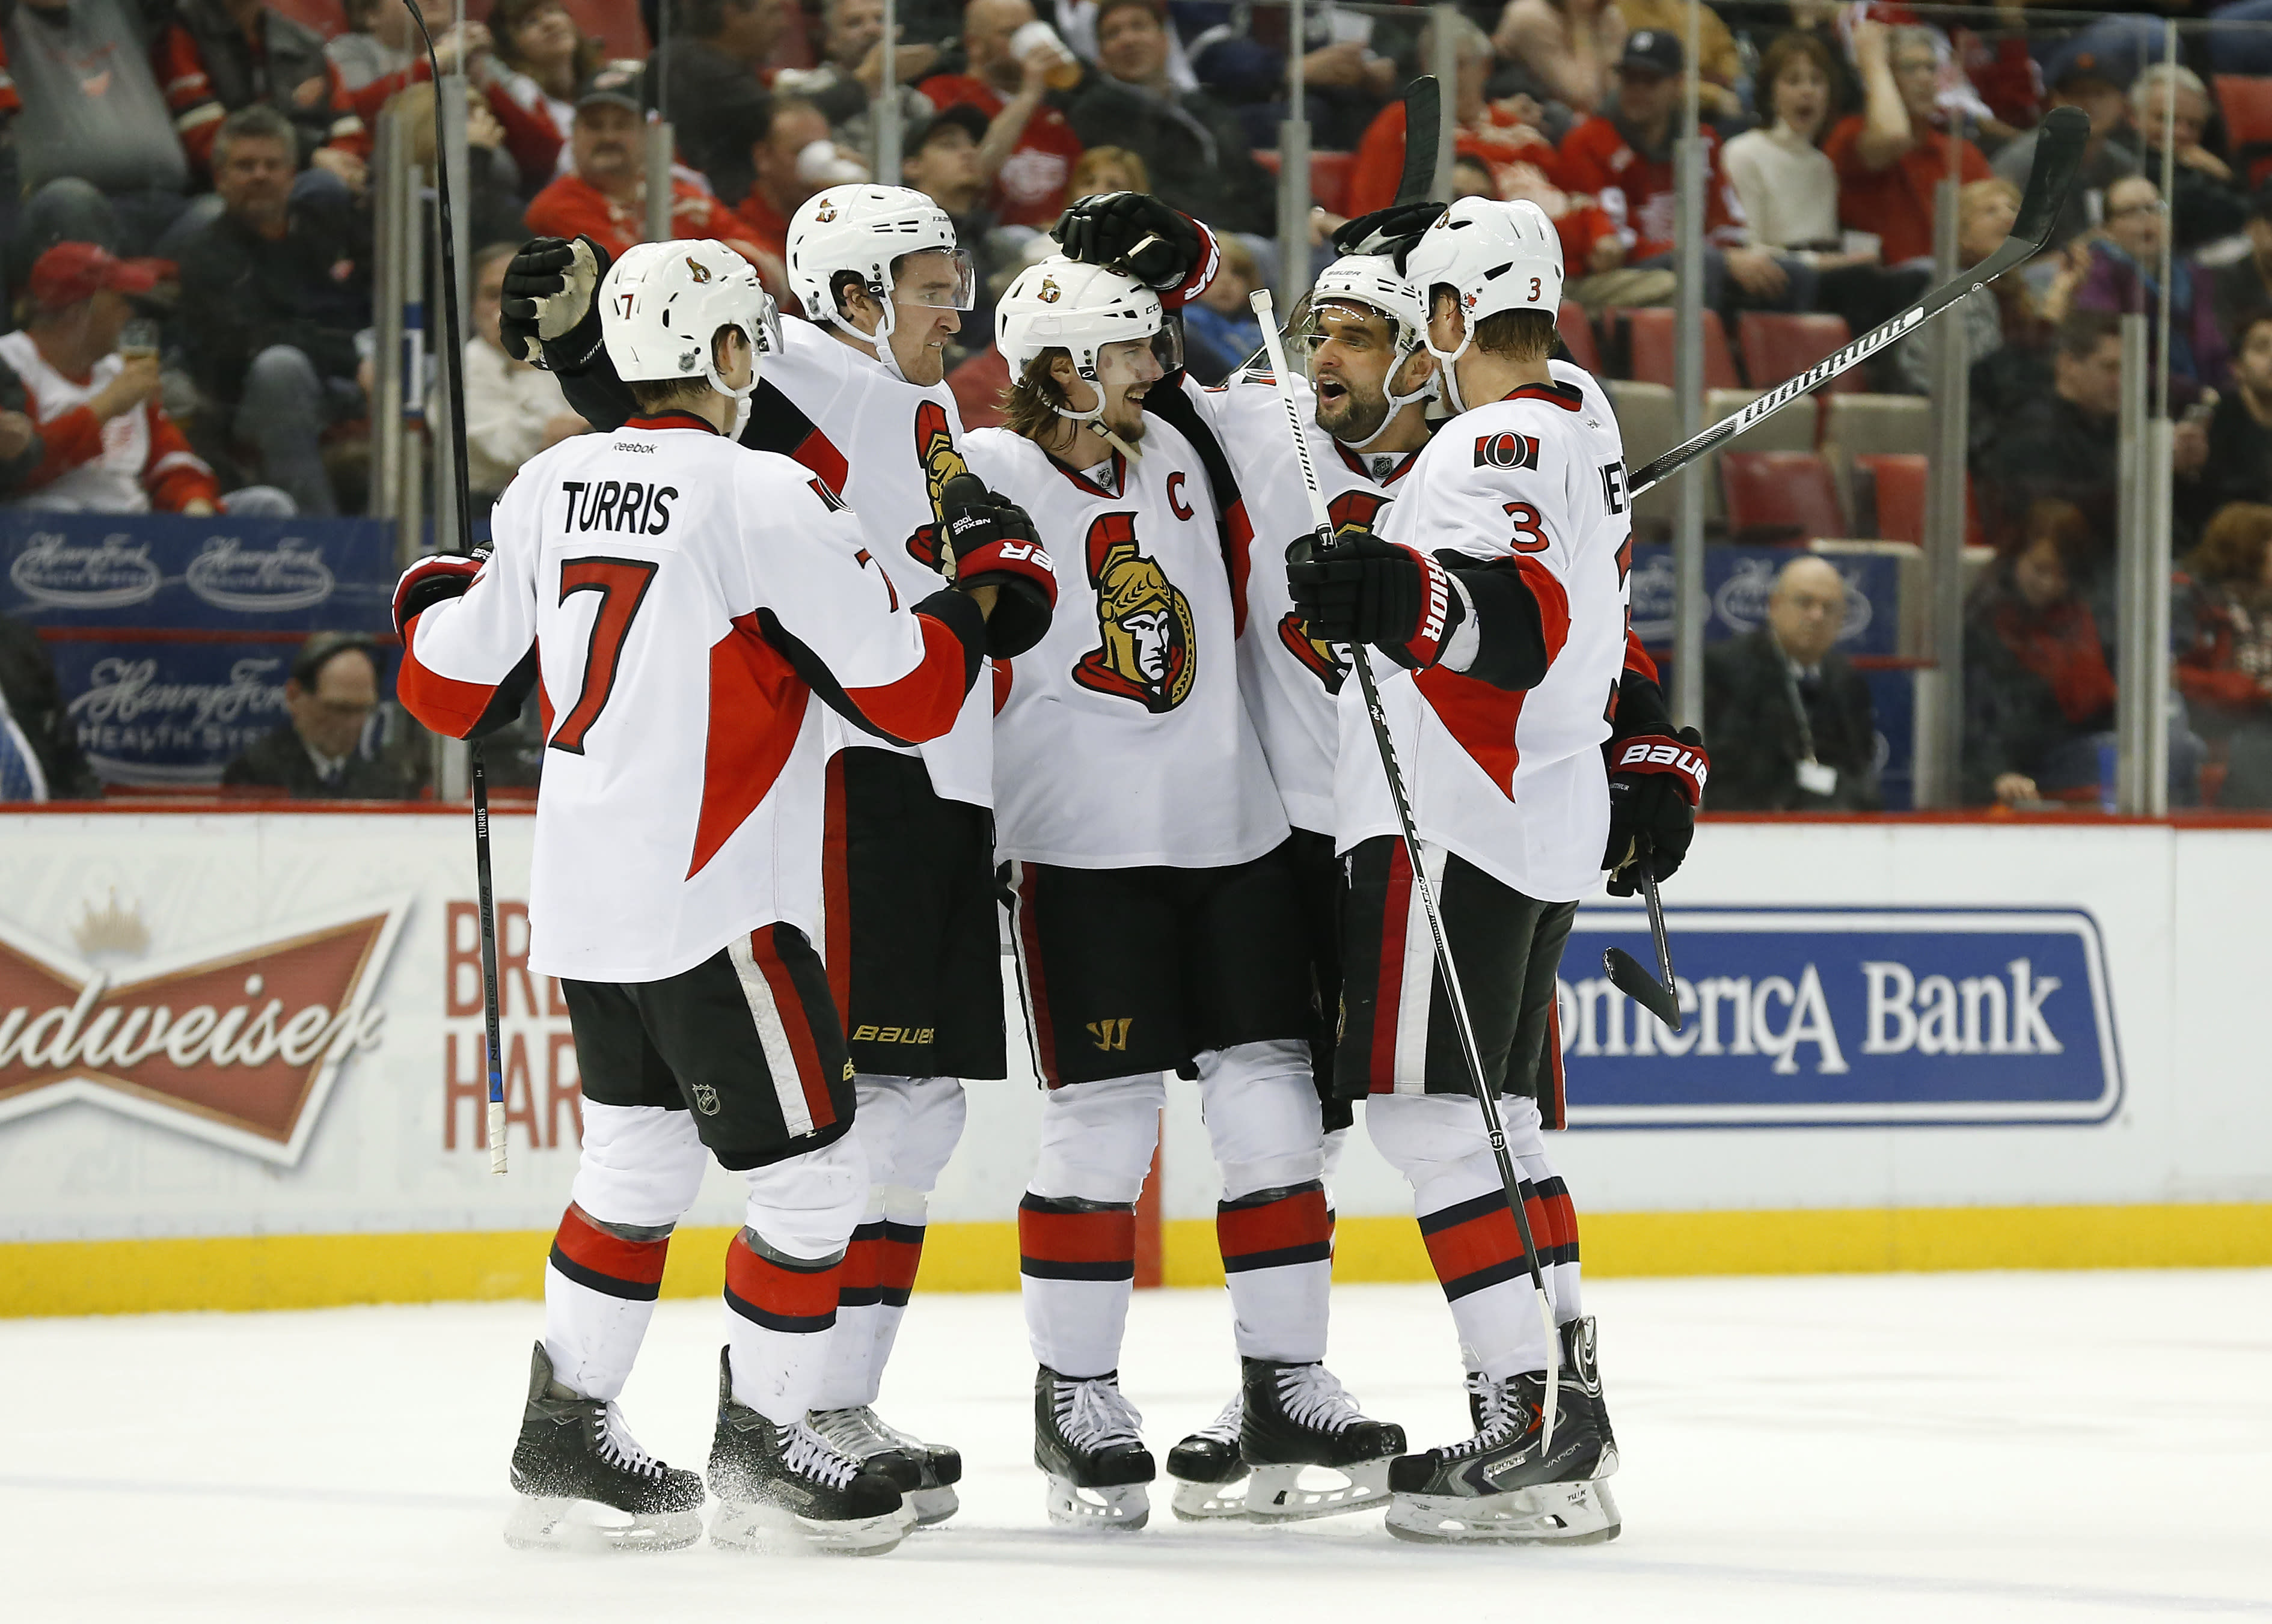 Stone's shootout goal lifts Senators over Red Wings 2-1